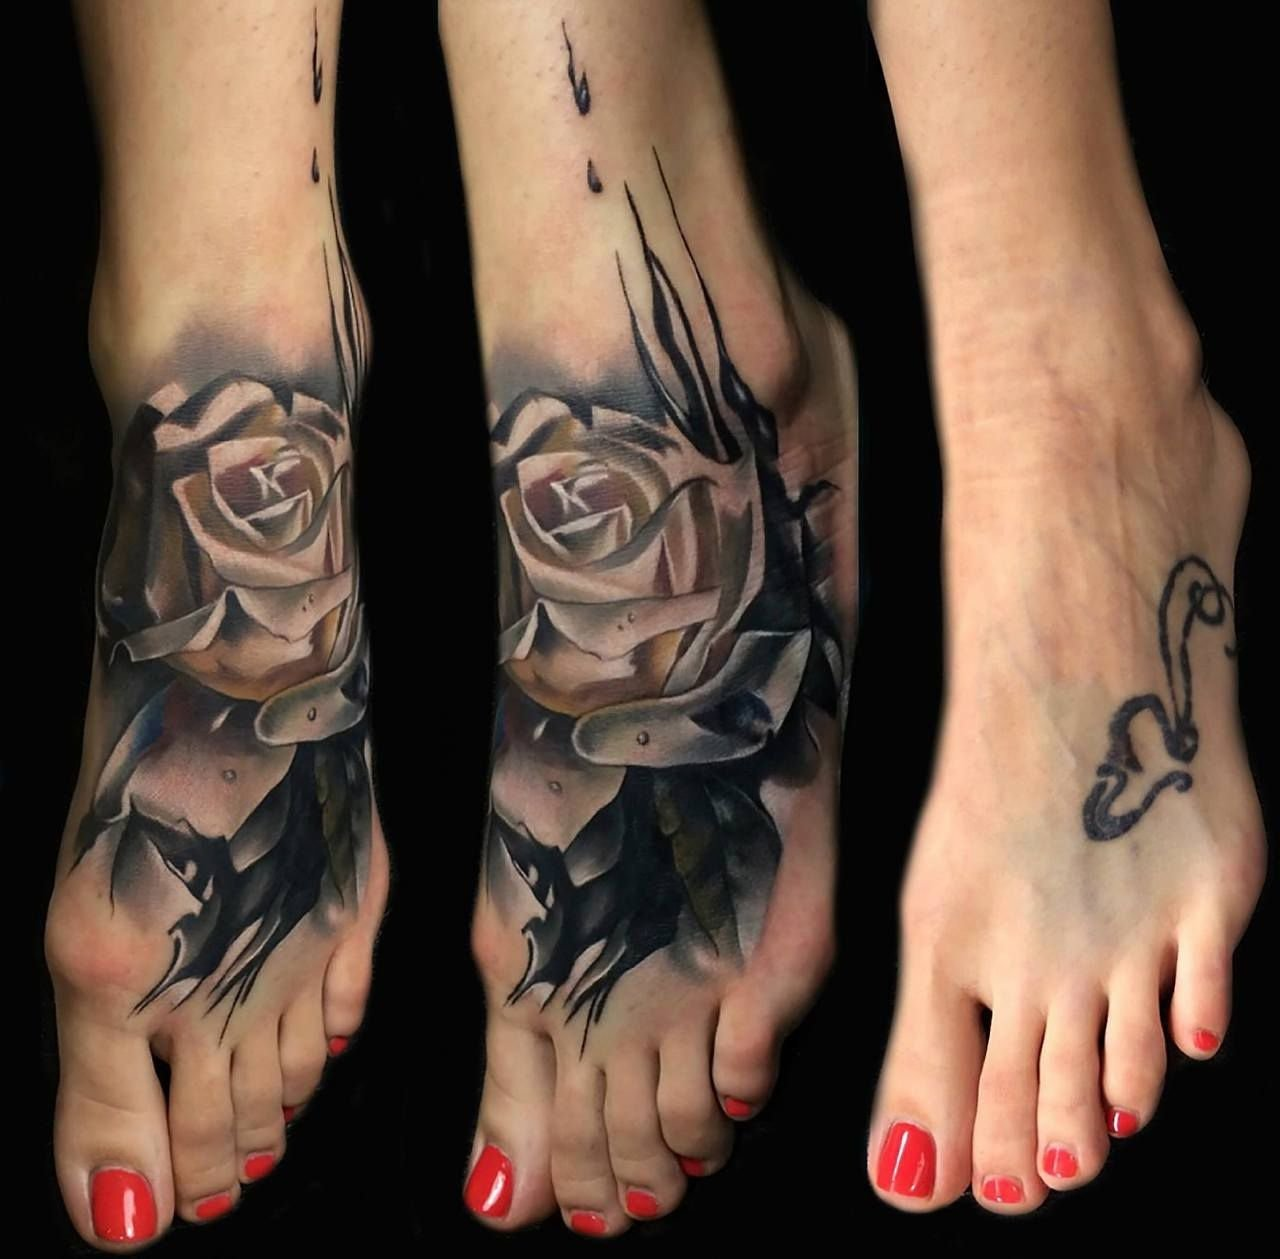 10 Most Recommended Best Cover Up Tattoo Ideas coverup tattoo foot rose cover up tattoo design best tattoo 4 2021